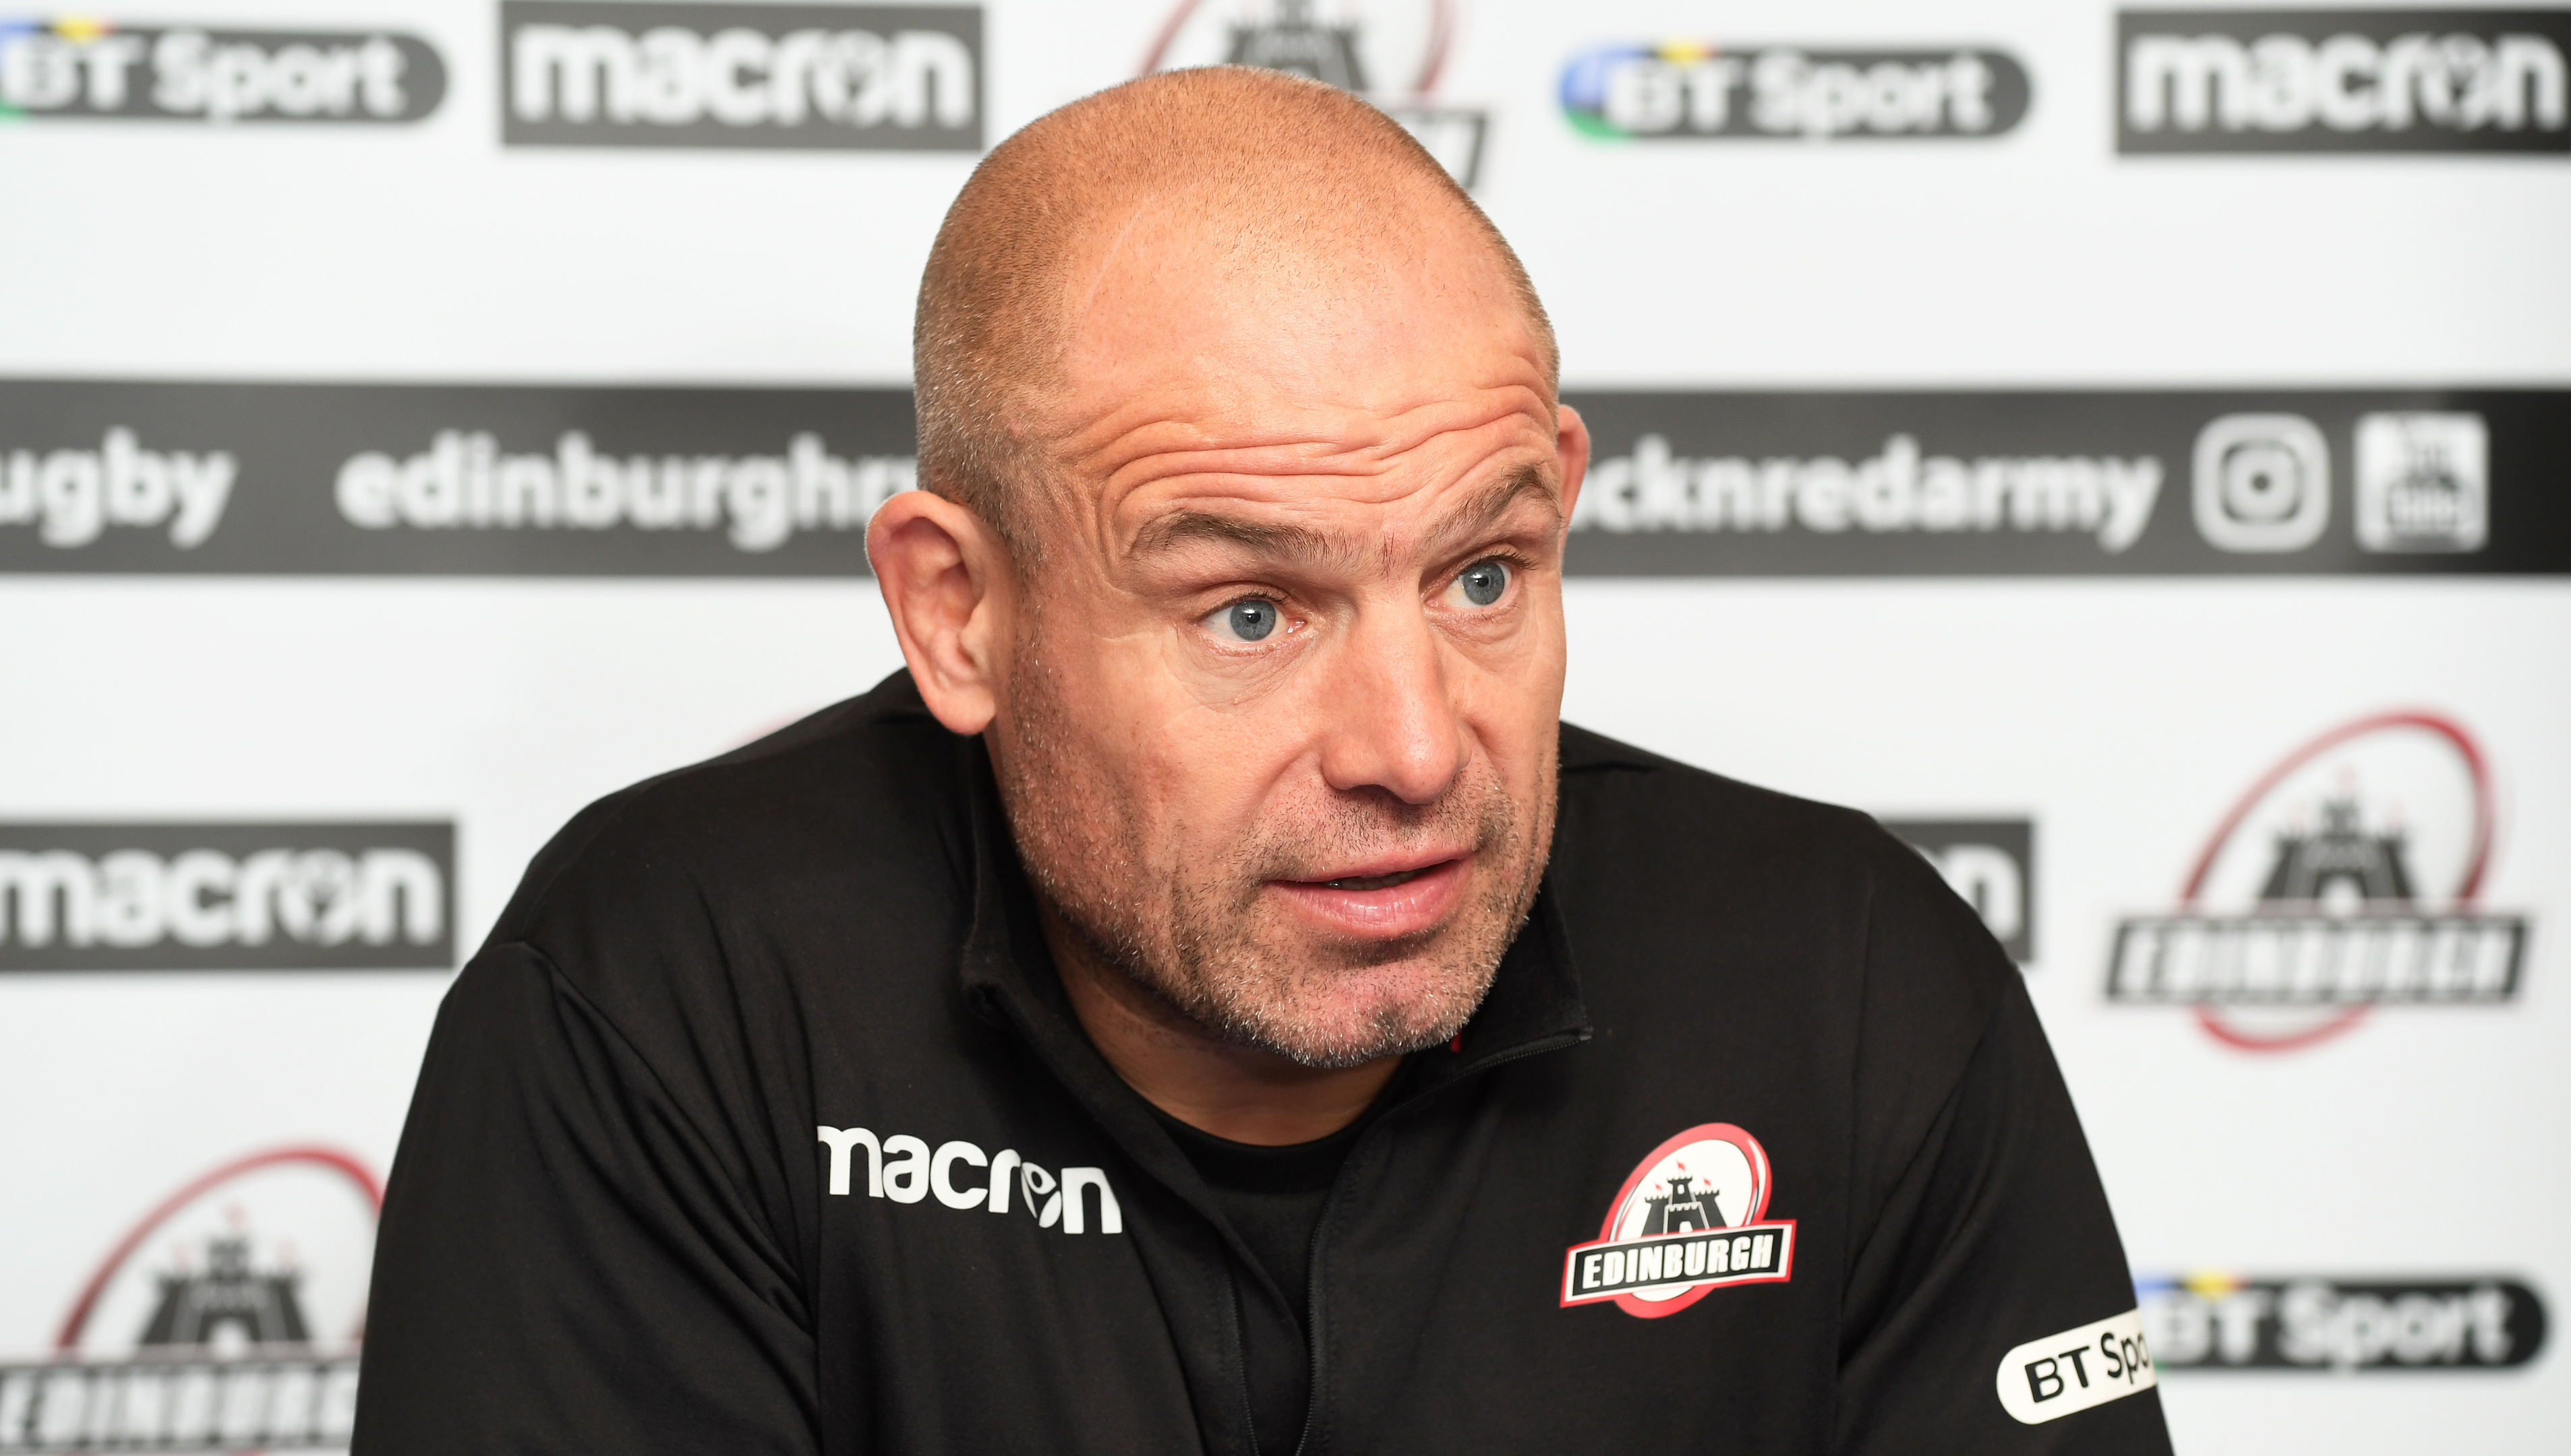 Edinburgh head coach Richard Cockerill in sombre mood after last week's loss to Benetton.